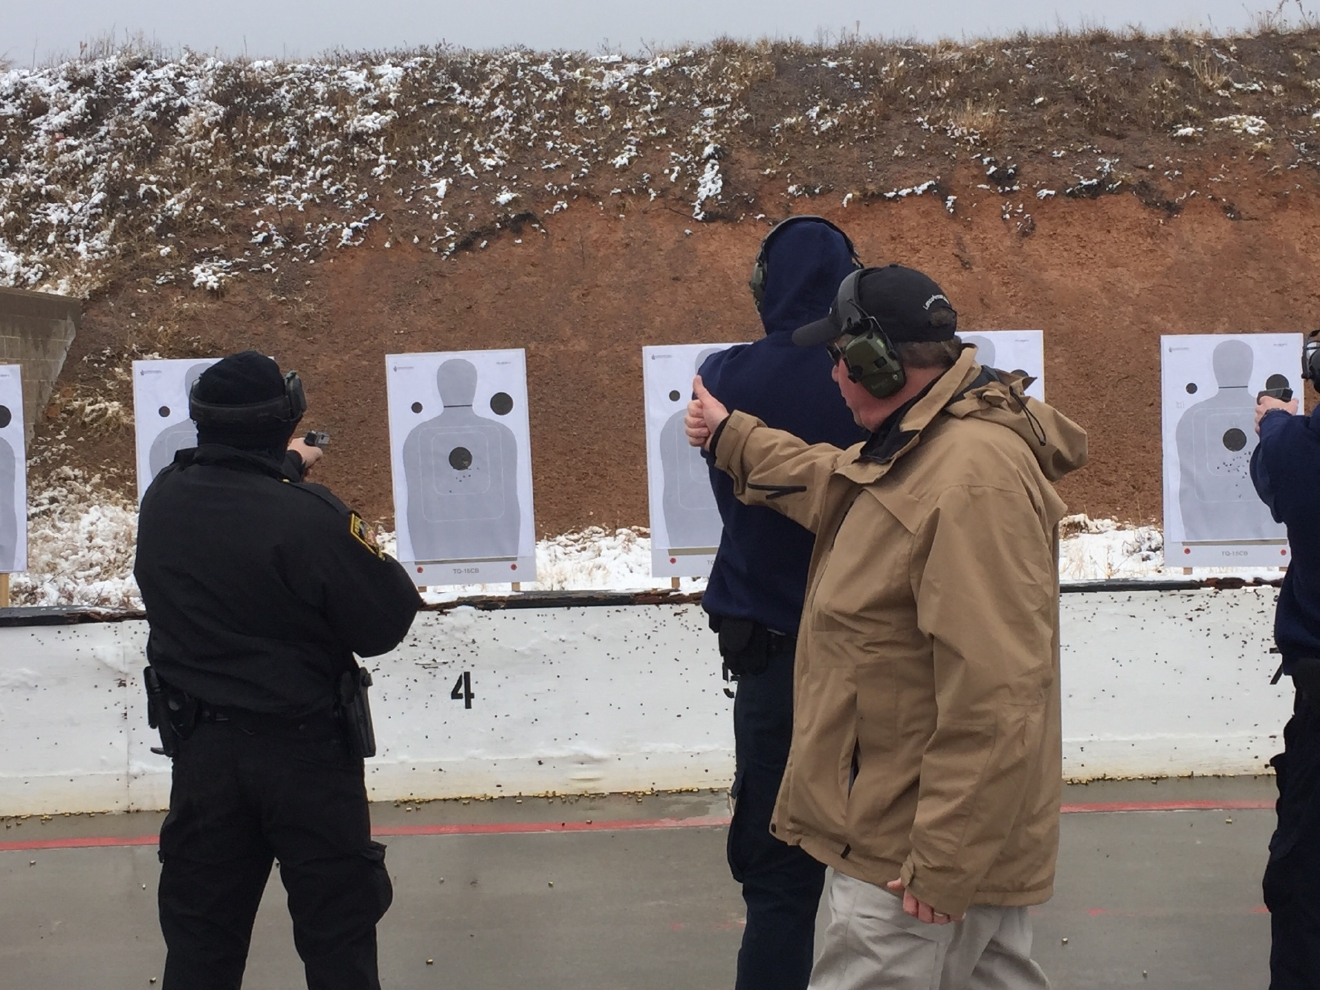 Randall County Lt. Tim Williams instructs students at Amarillo's Gun Range. (ABC 7 Amarillo - Lisa Schmidt)